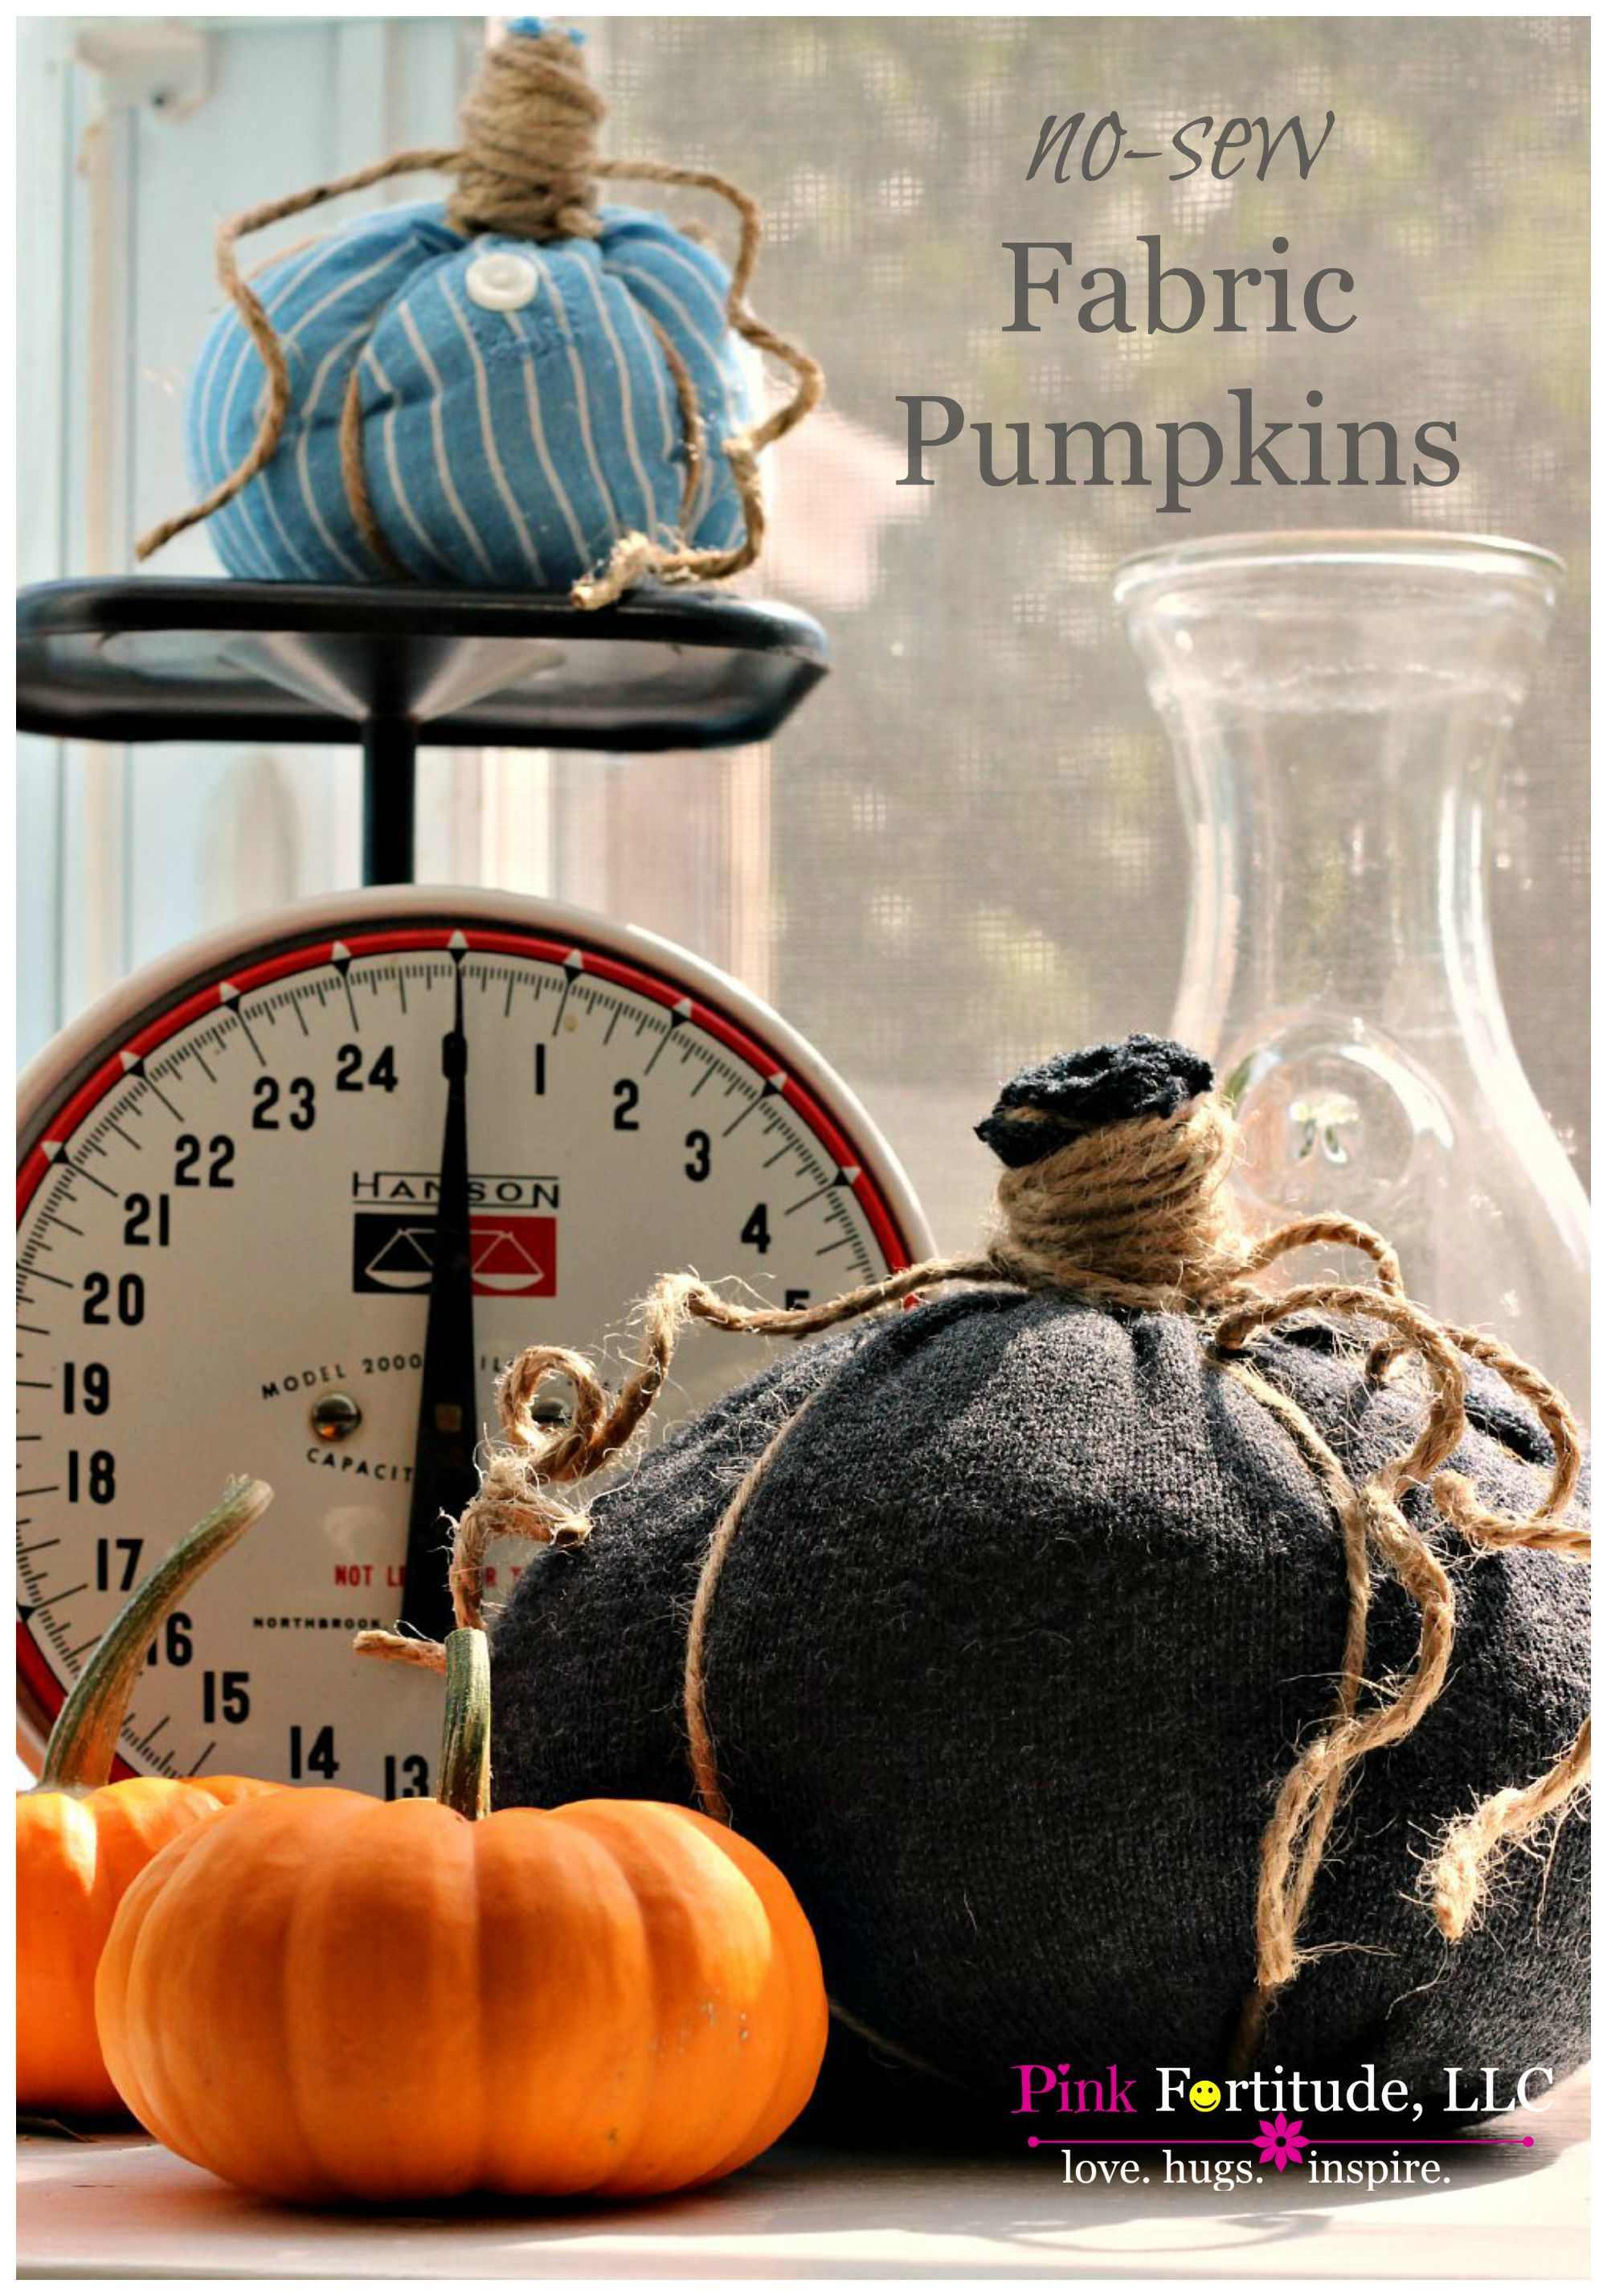 No Sew Fabric Pumpkins Upcycle Your Old Shirts and Sweaters